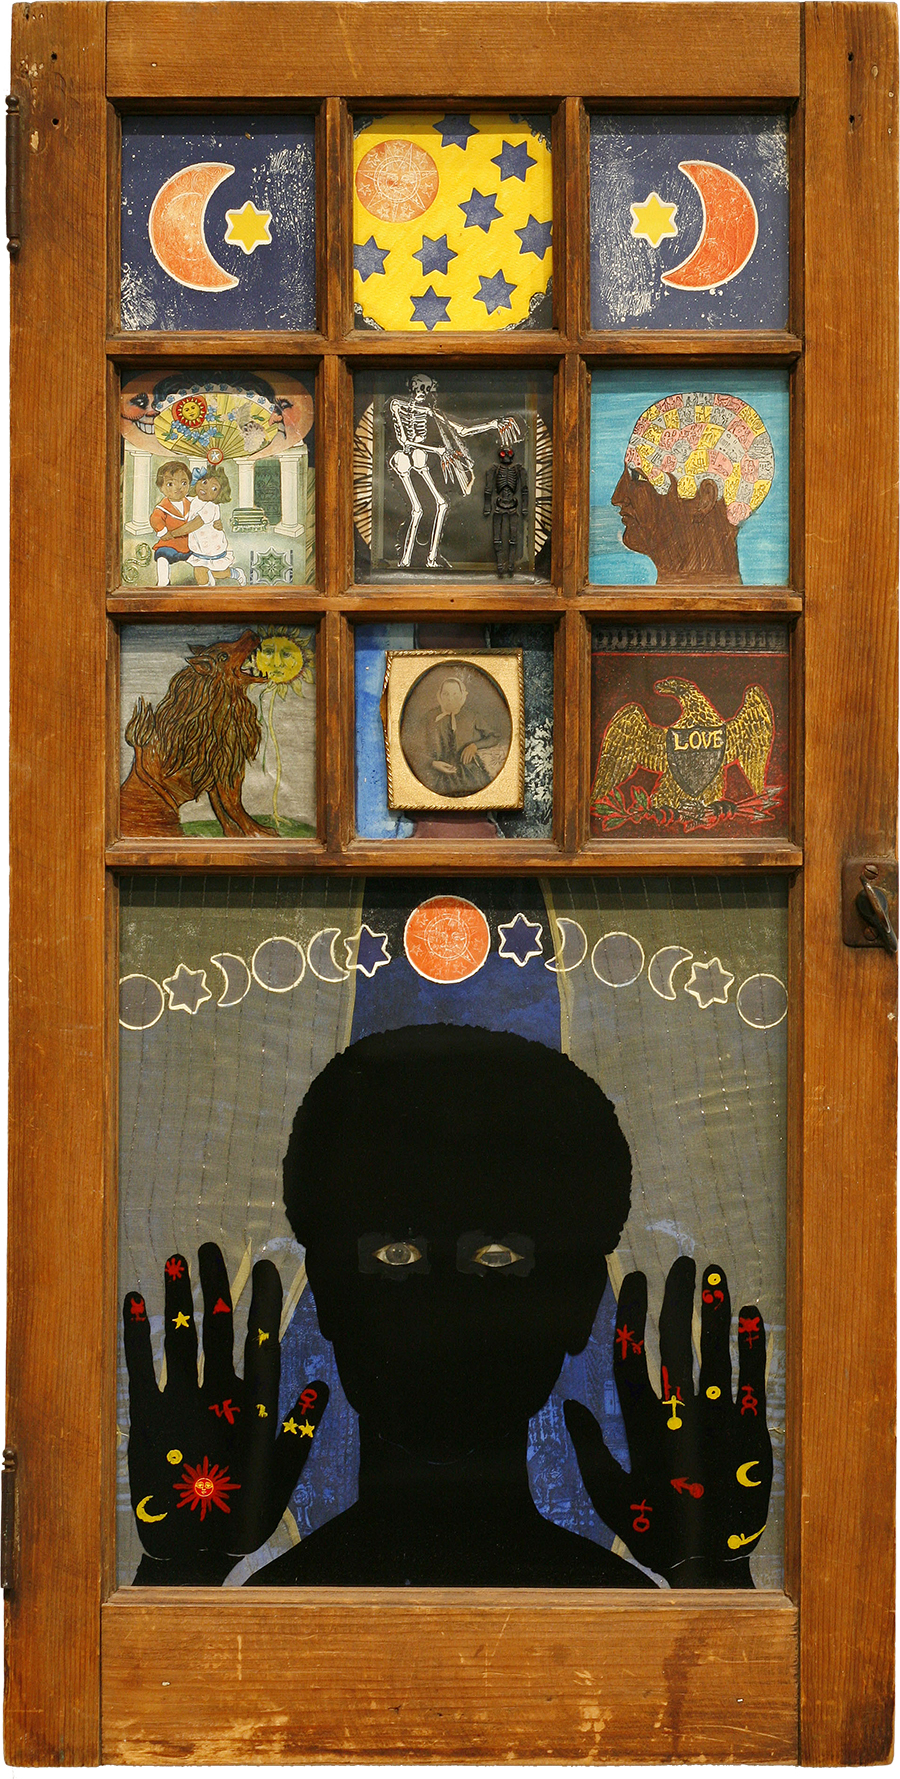 "Betye Saar (b.1926)  Black Girl's Window , 1969 assemblage in window 35 3/4"" x 18"" x 1 1/2"", signed and dated Collection of the Museum of Modern Art, New York, NY; Courtesy of Michael Rosenfeld Gallery LLC, New York, NY"